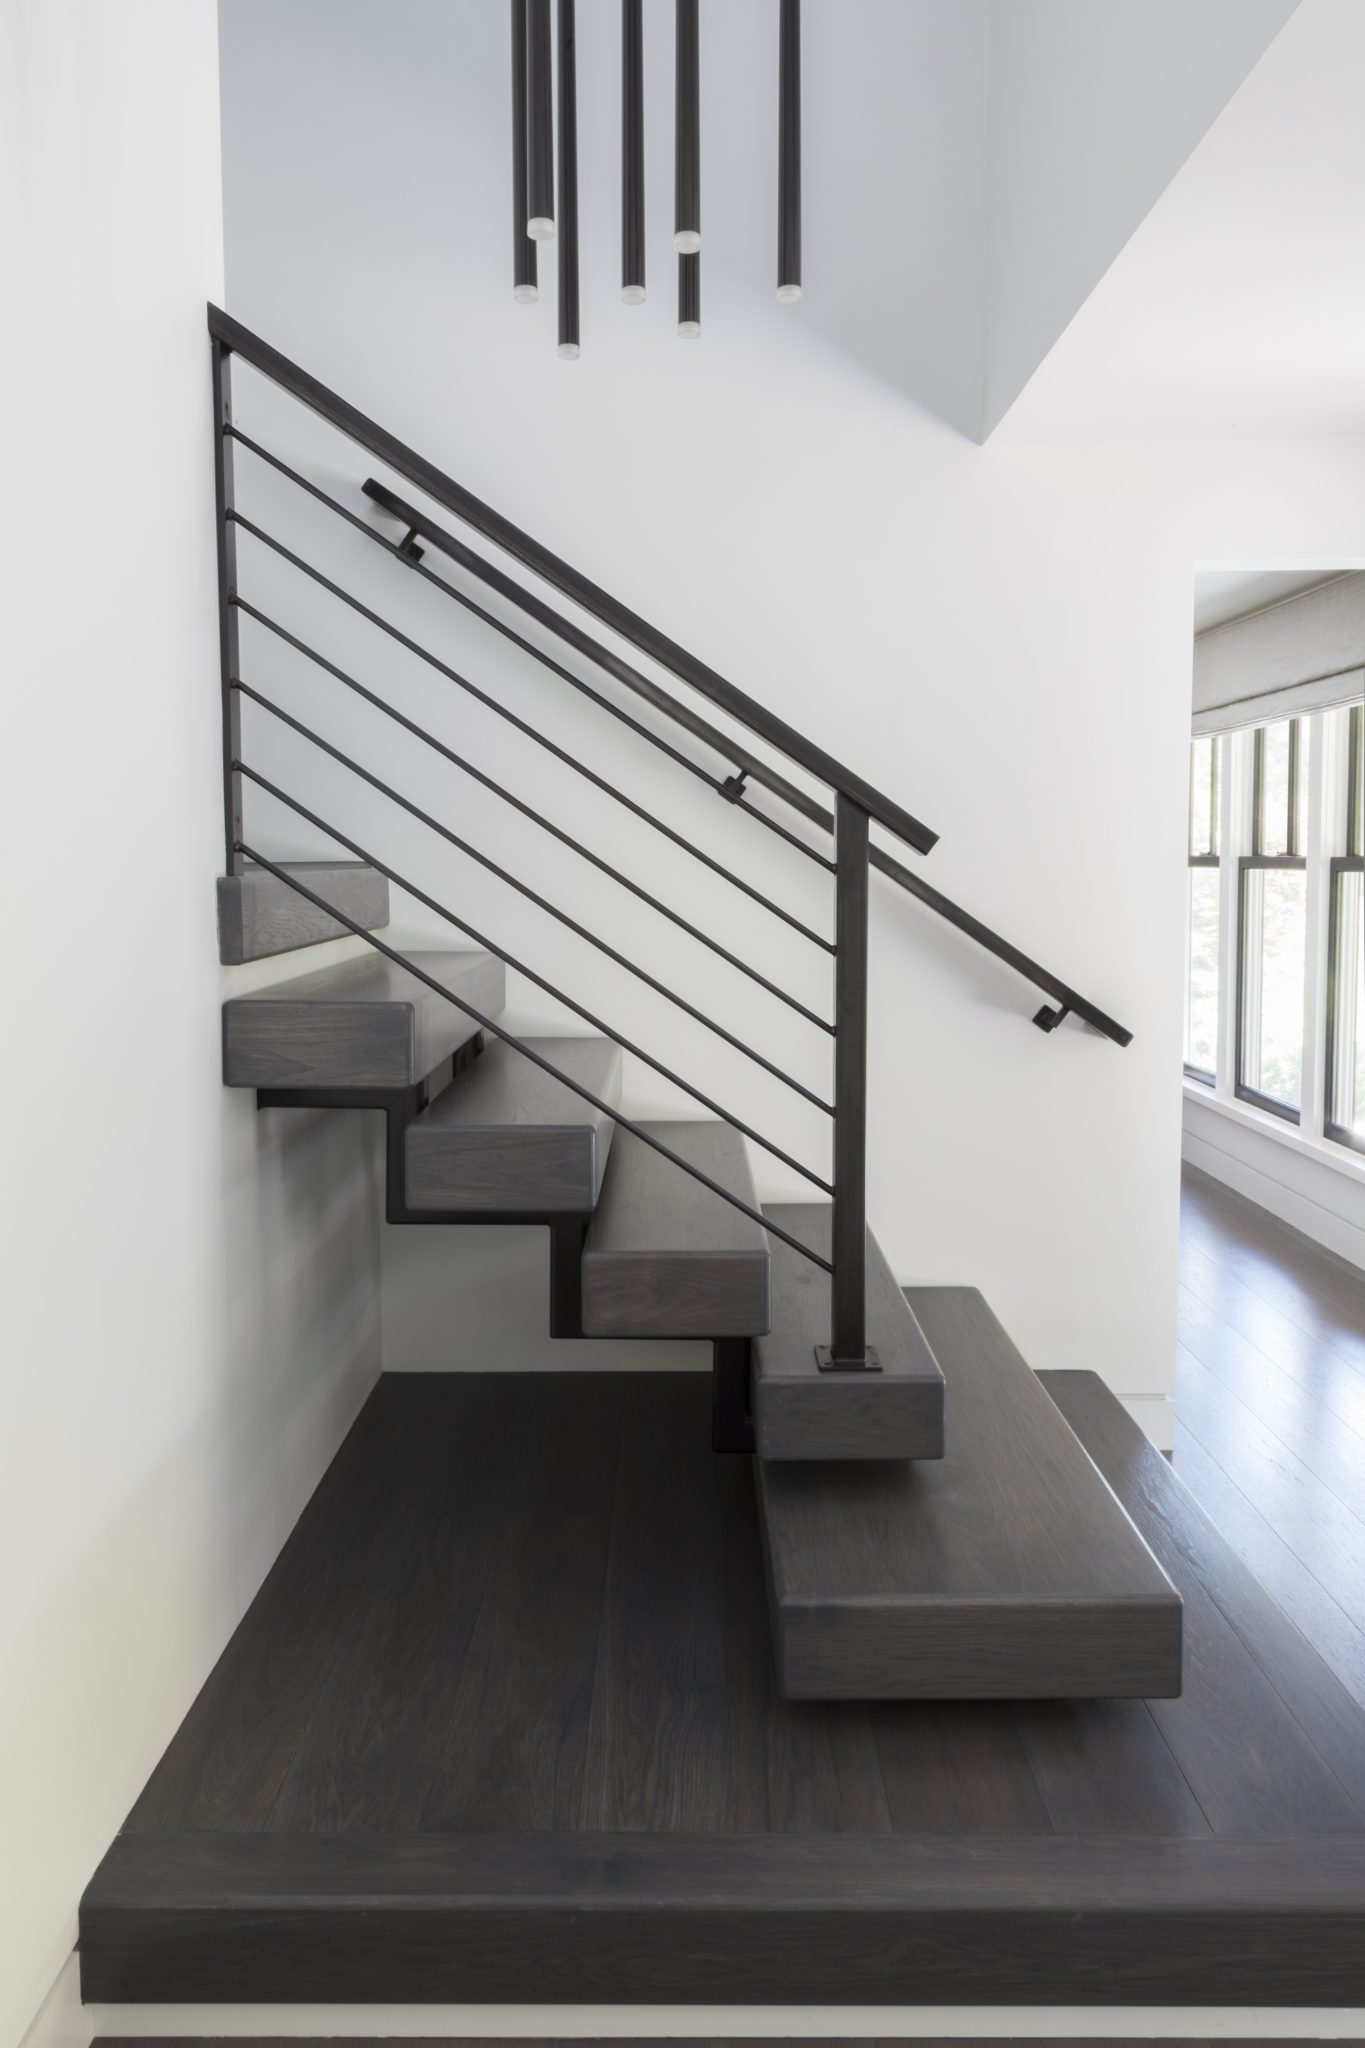 Floating Staircase w/ Clean Line Railing - Allendale, NJ Residence by Jenny Madden Design